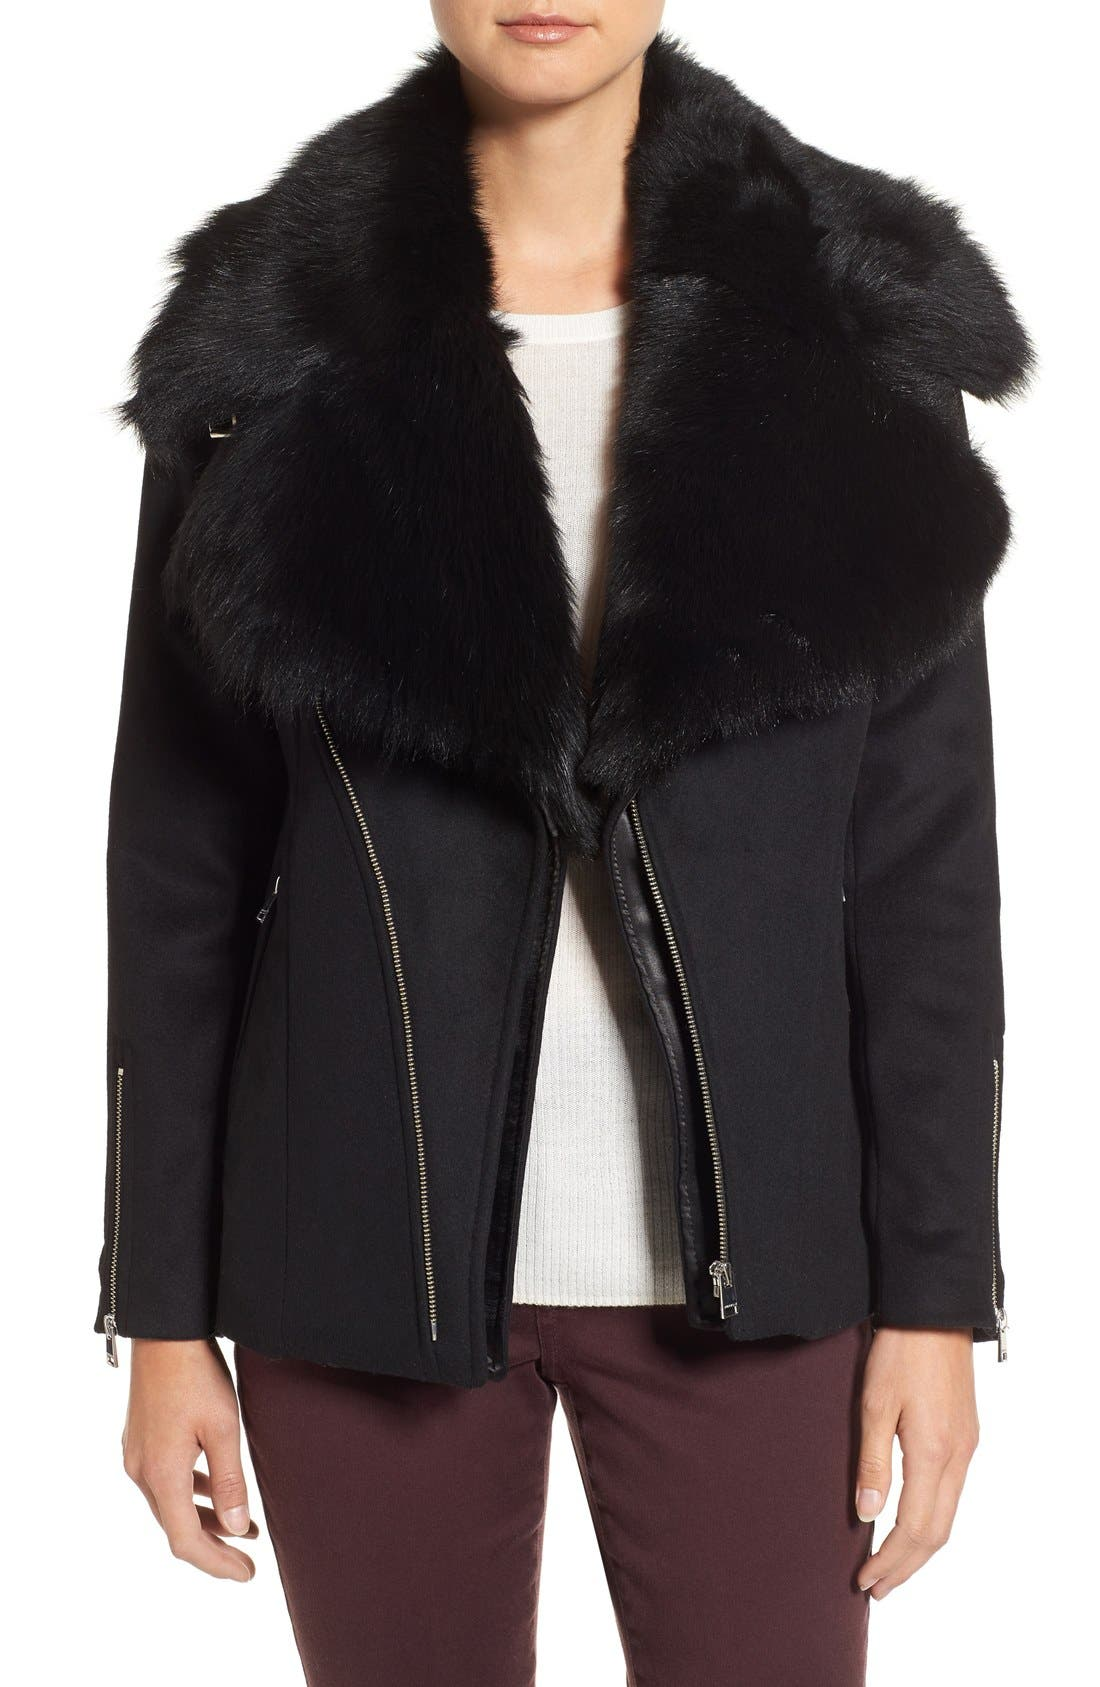 LAMARQUE Wool Blend Moto Jacket with Detachable Genuine Shearling Collar